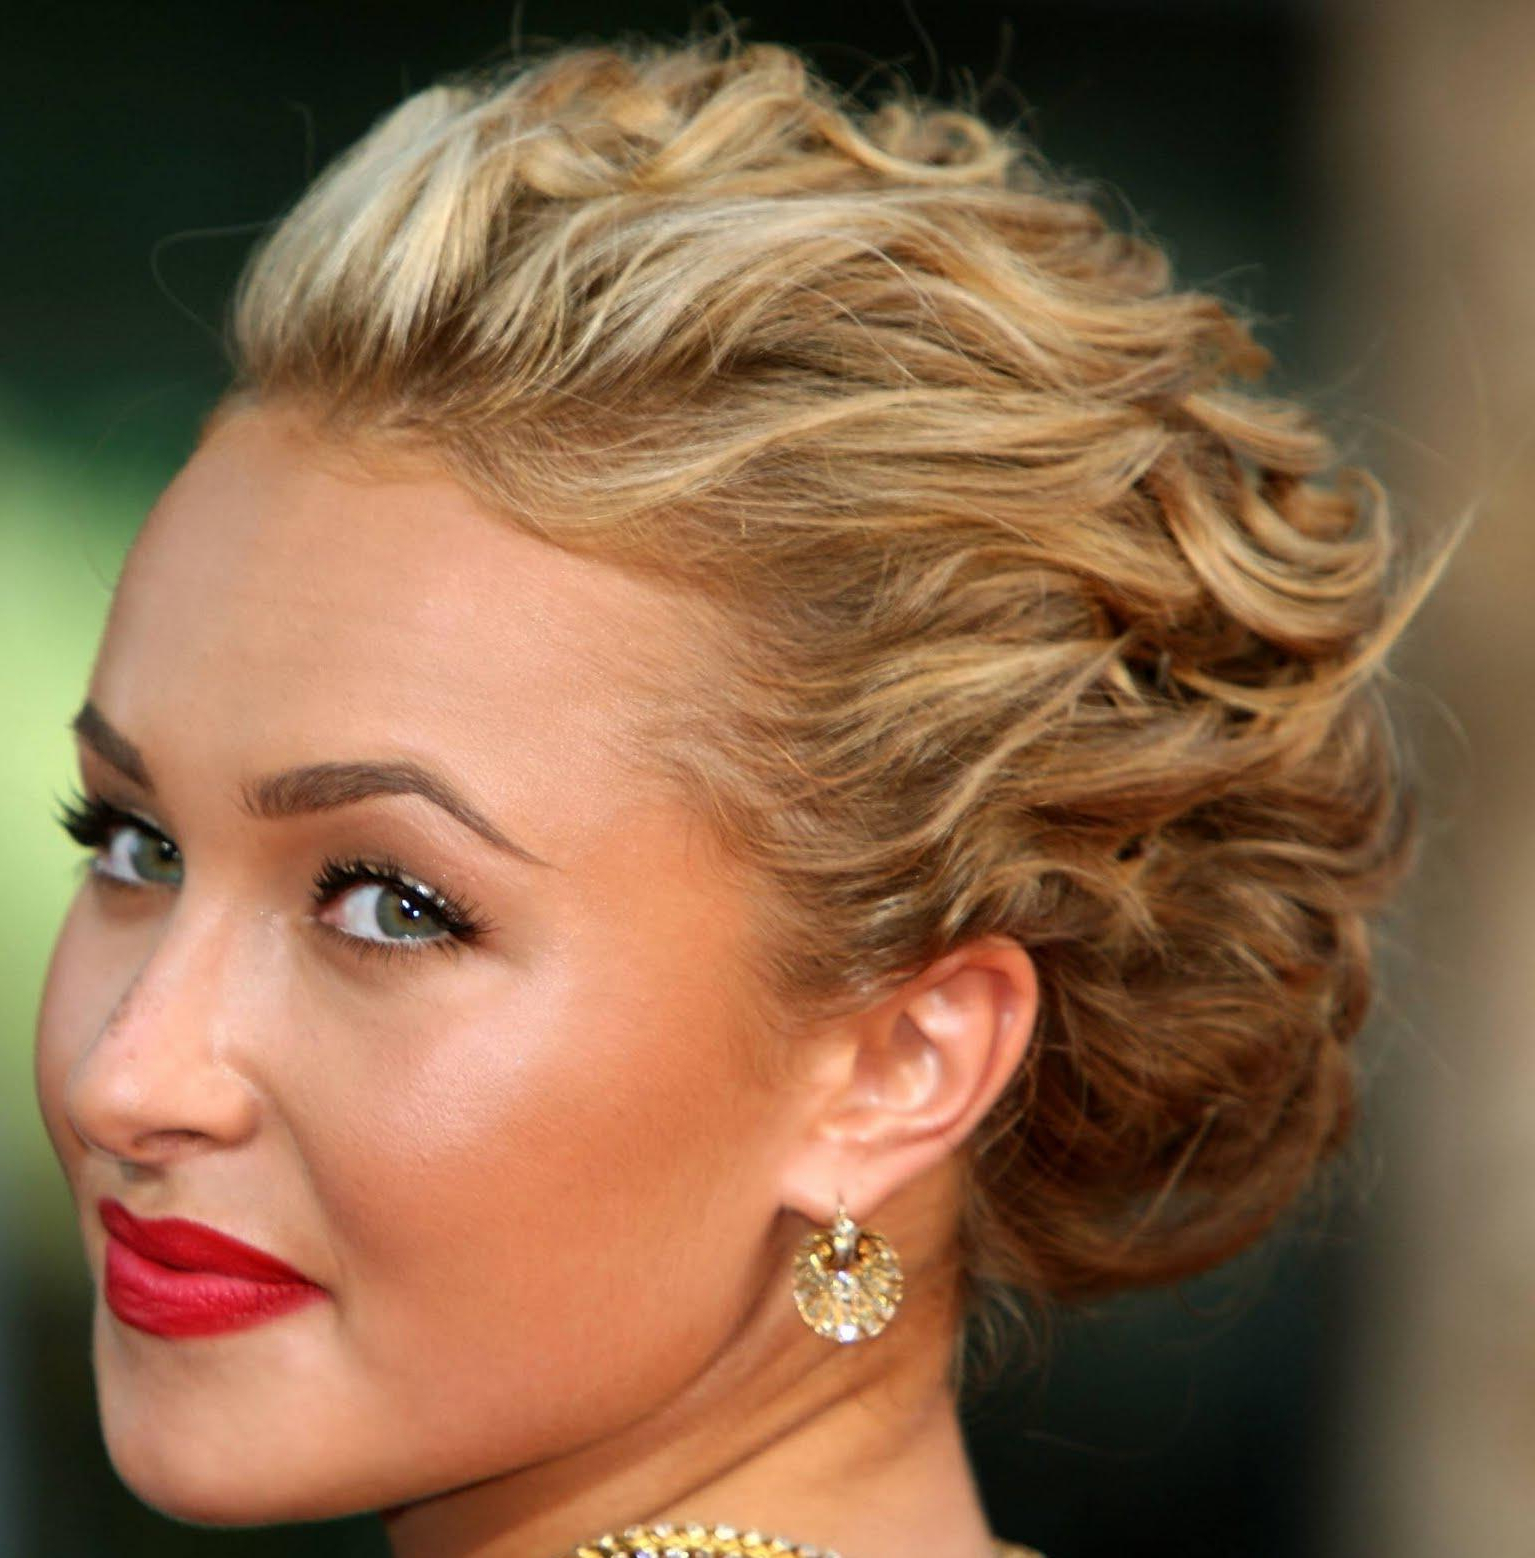 Quick Hairstyles For Short To Medium Hair | Hairstyles For Women Within Special Occasion Short Hairstyles (View 16 of 25)